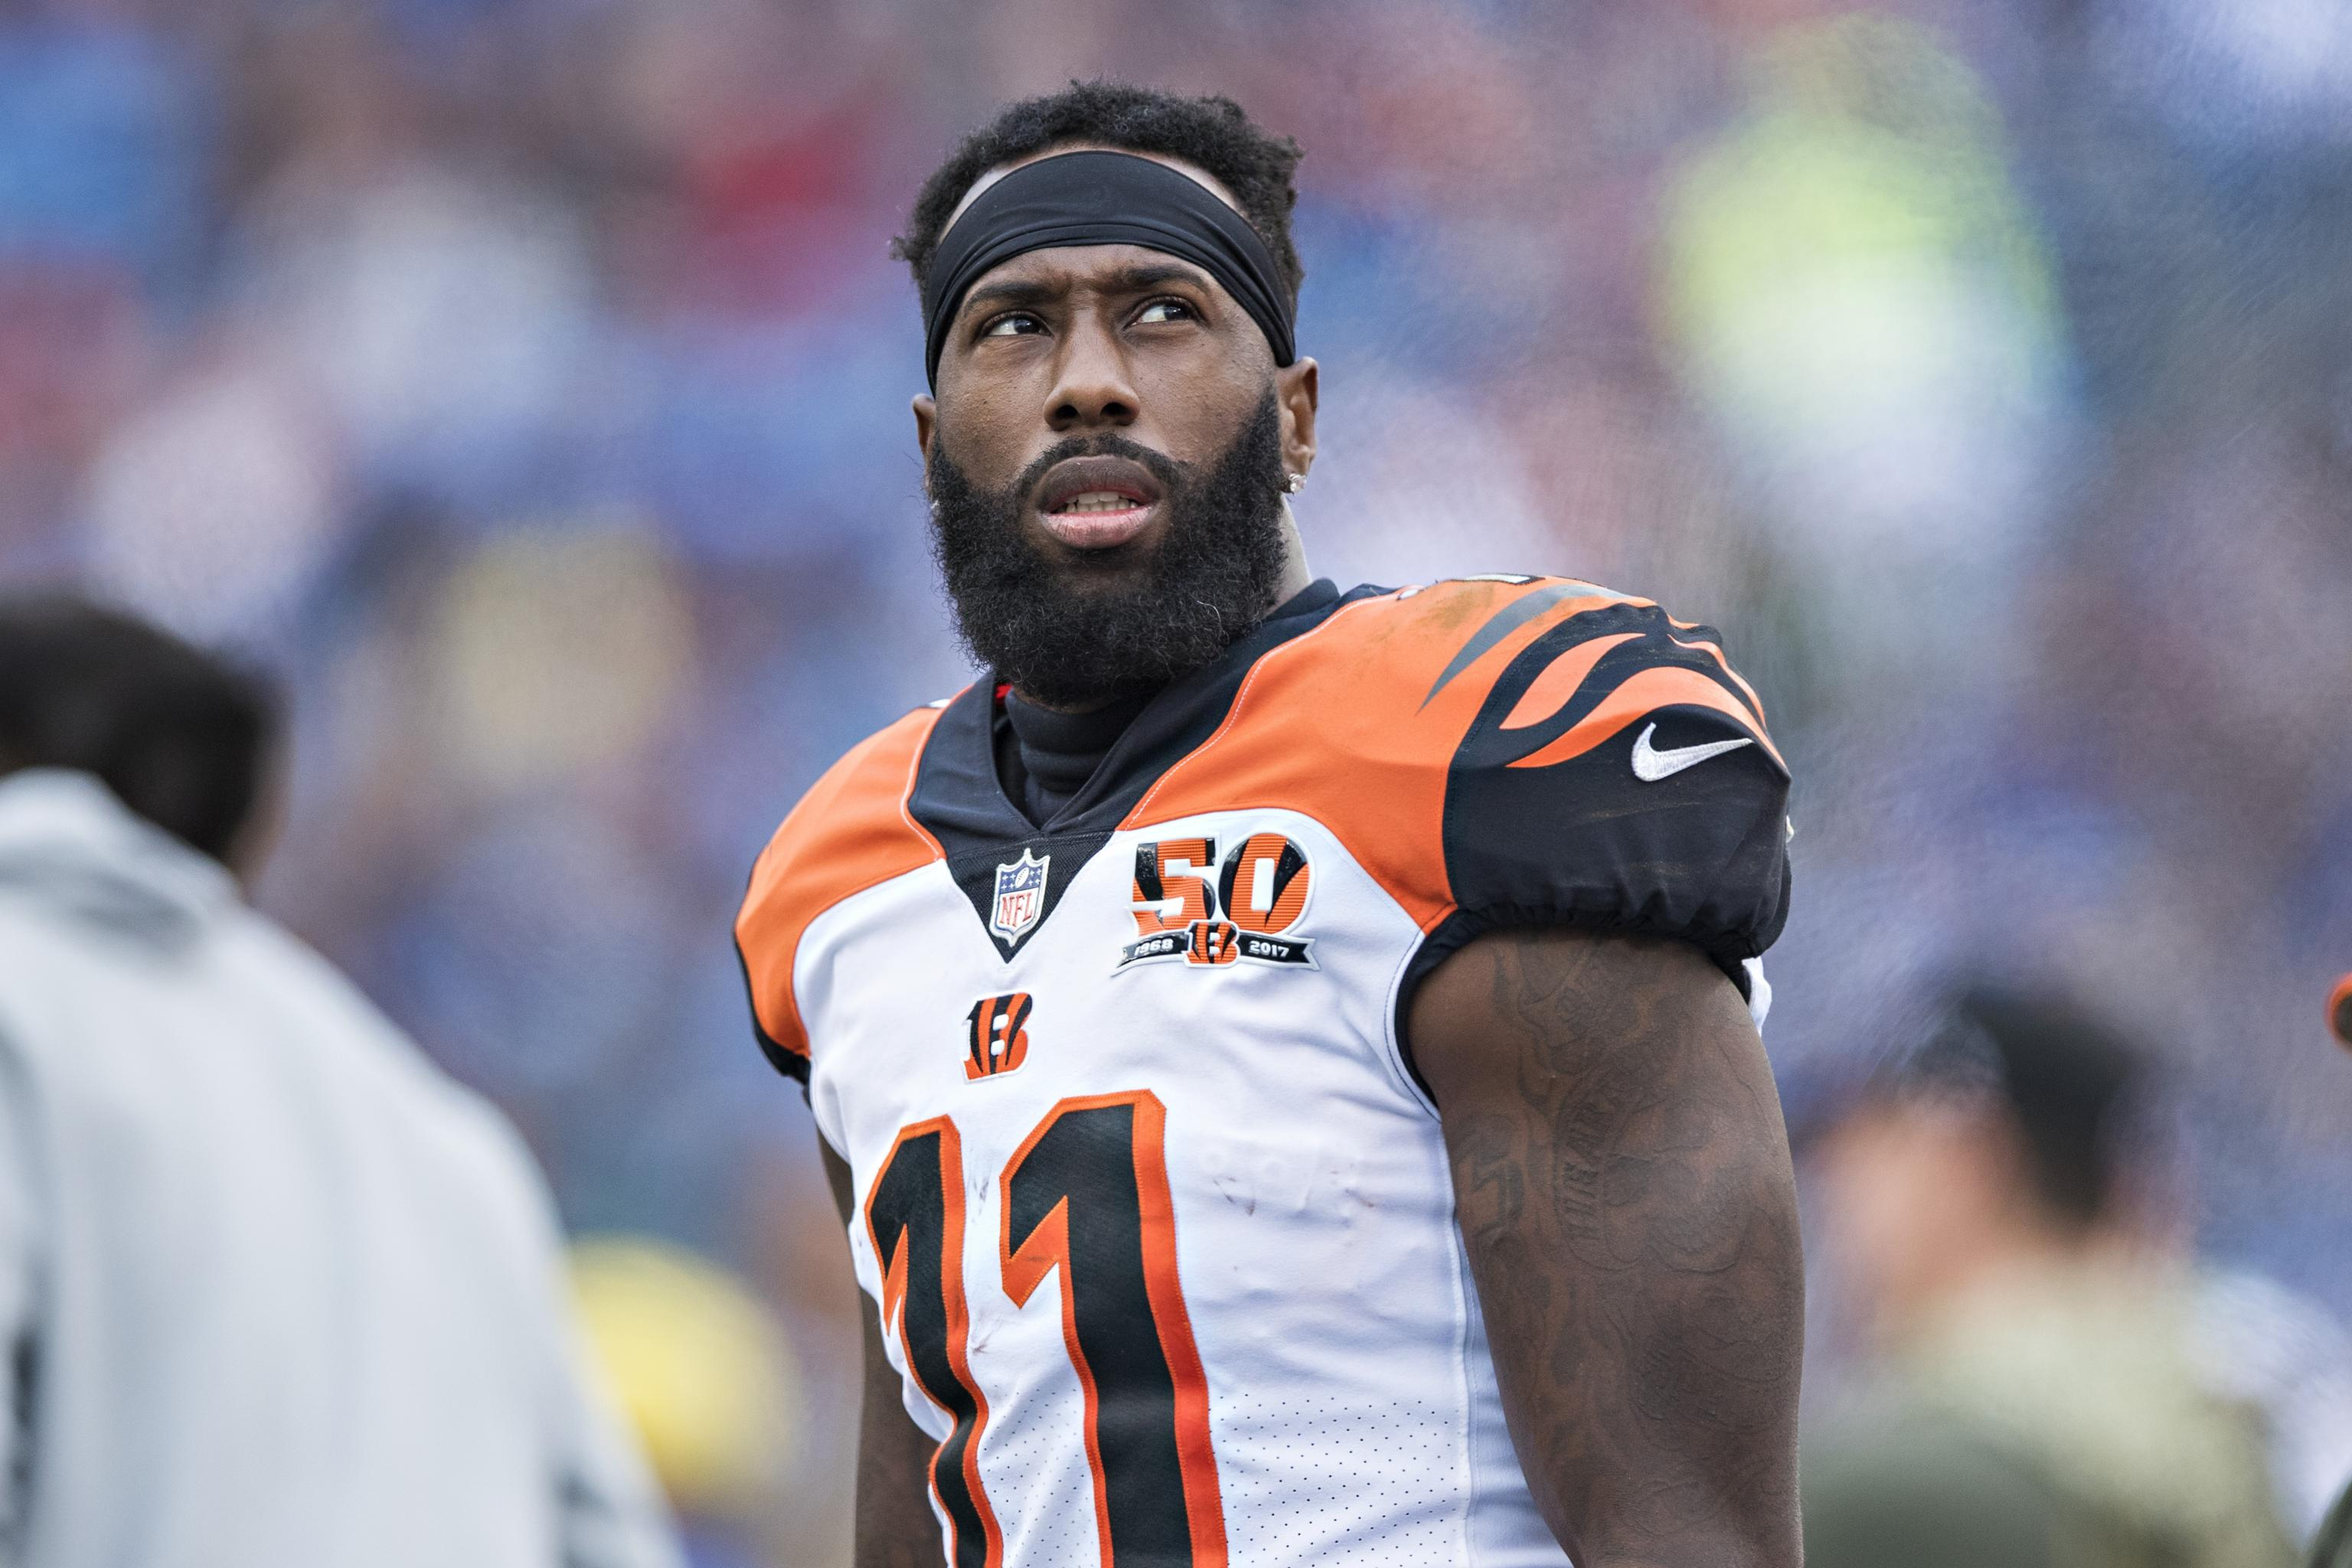 timeless design da53f cdcca Raiders Rumors: Brandon LaFell Signed to Contract After ...